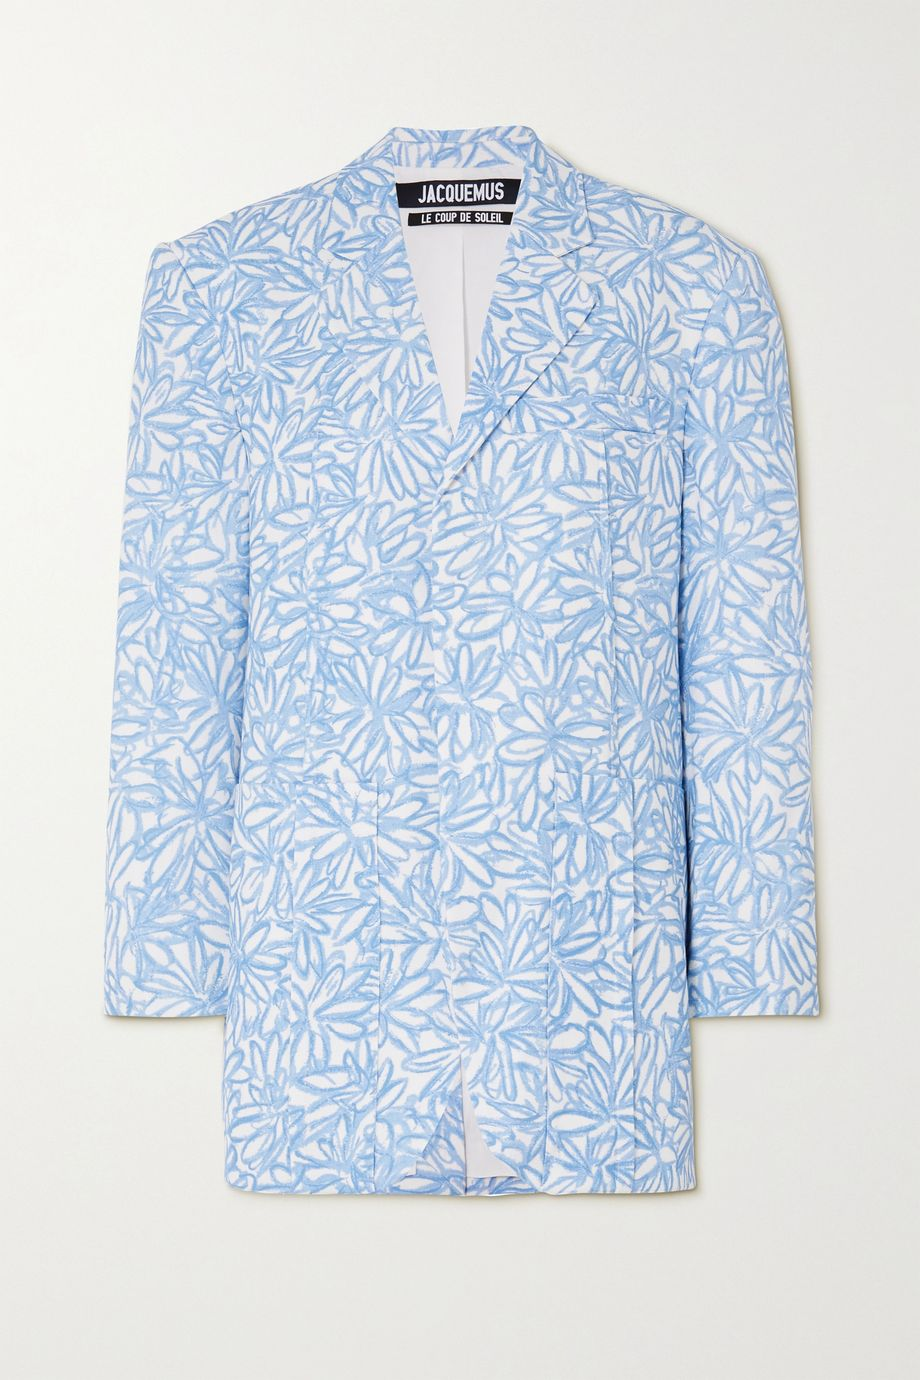 Jacquemus Oversized floral-print woven blazer